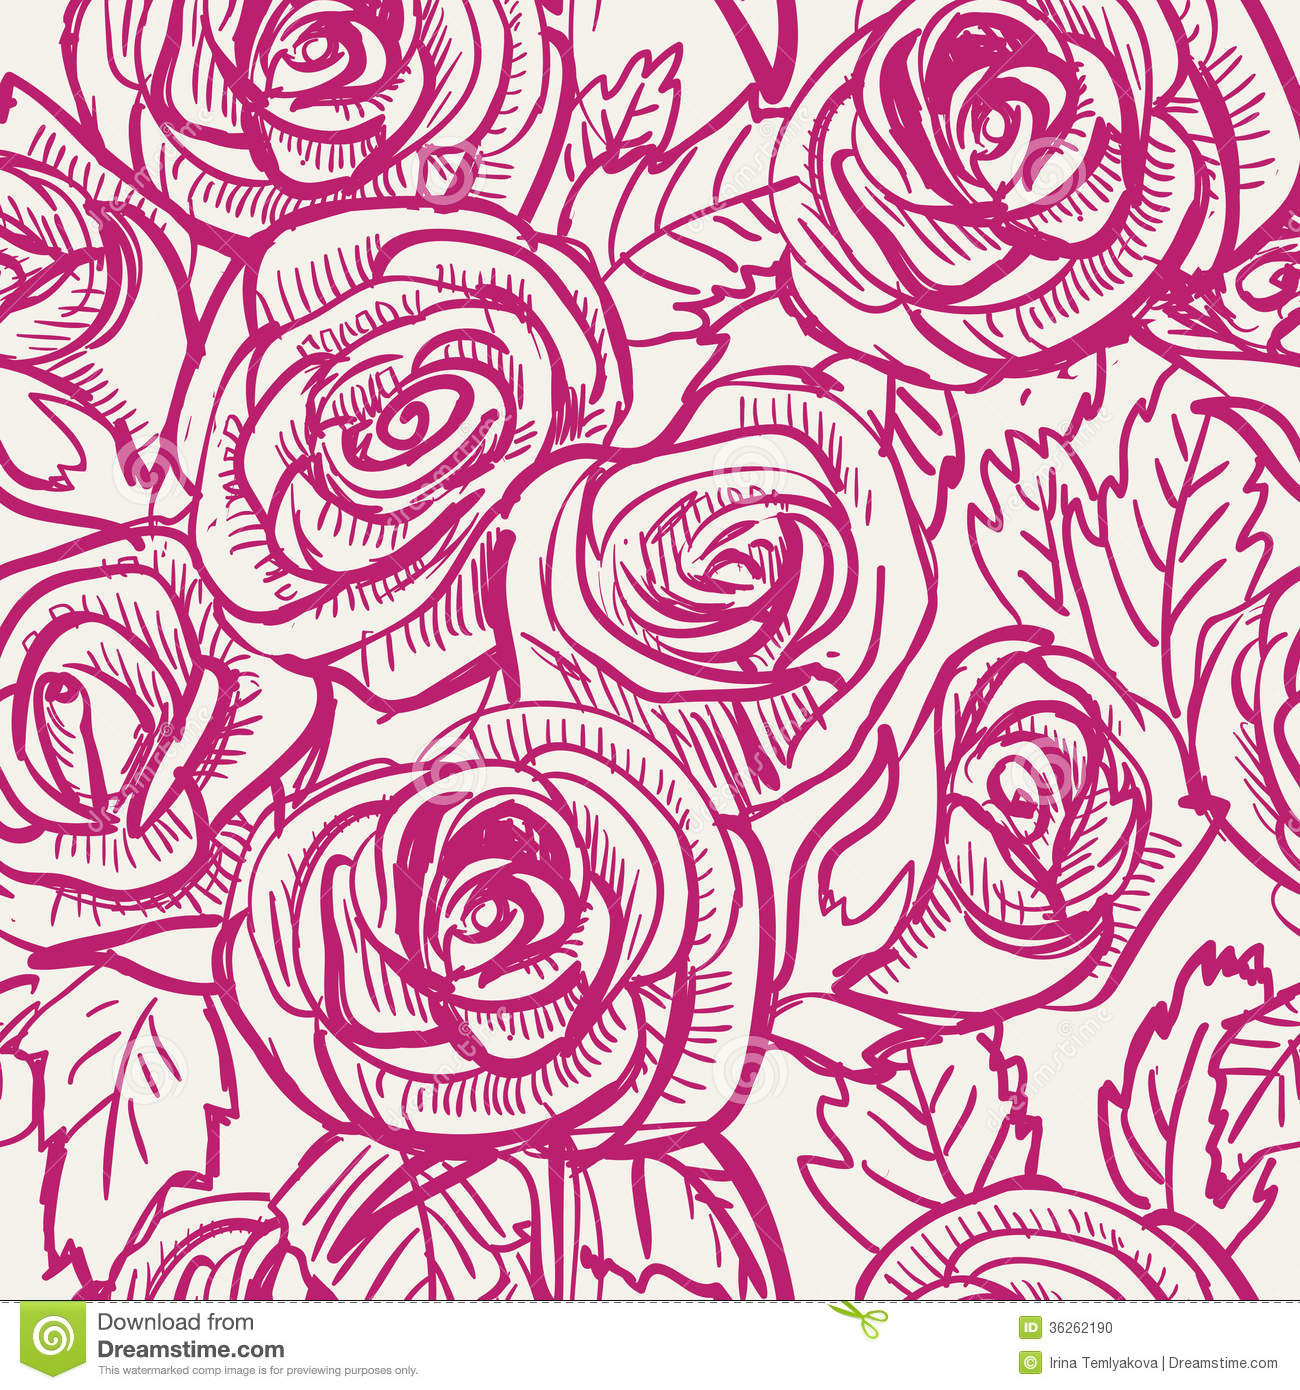 15 Vector Rose Pattern Images - Rose Vector Pattern, Pink ...